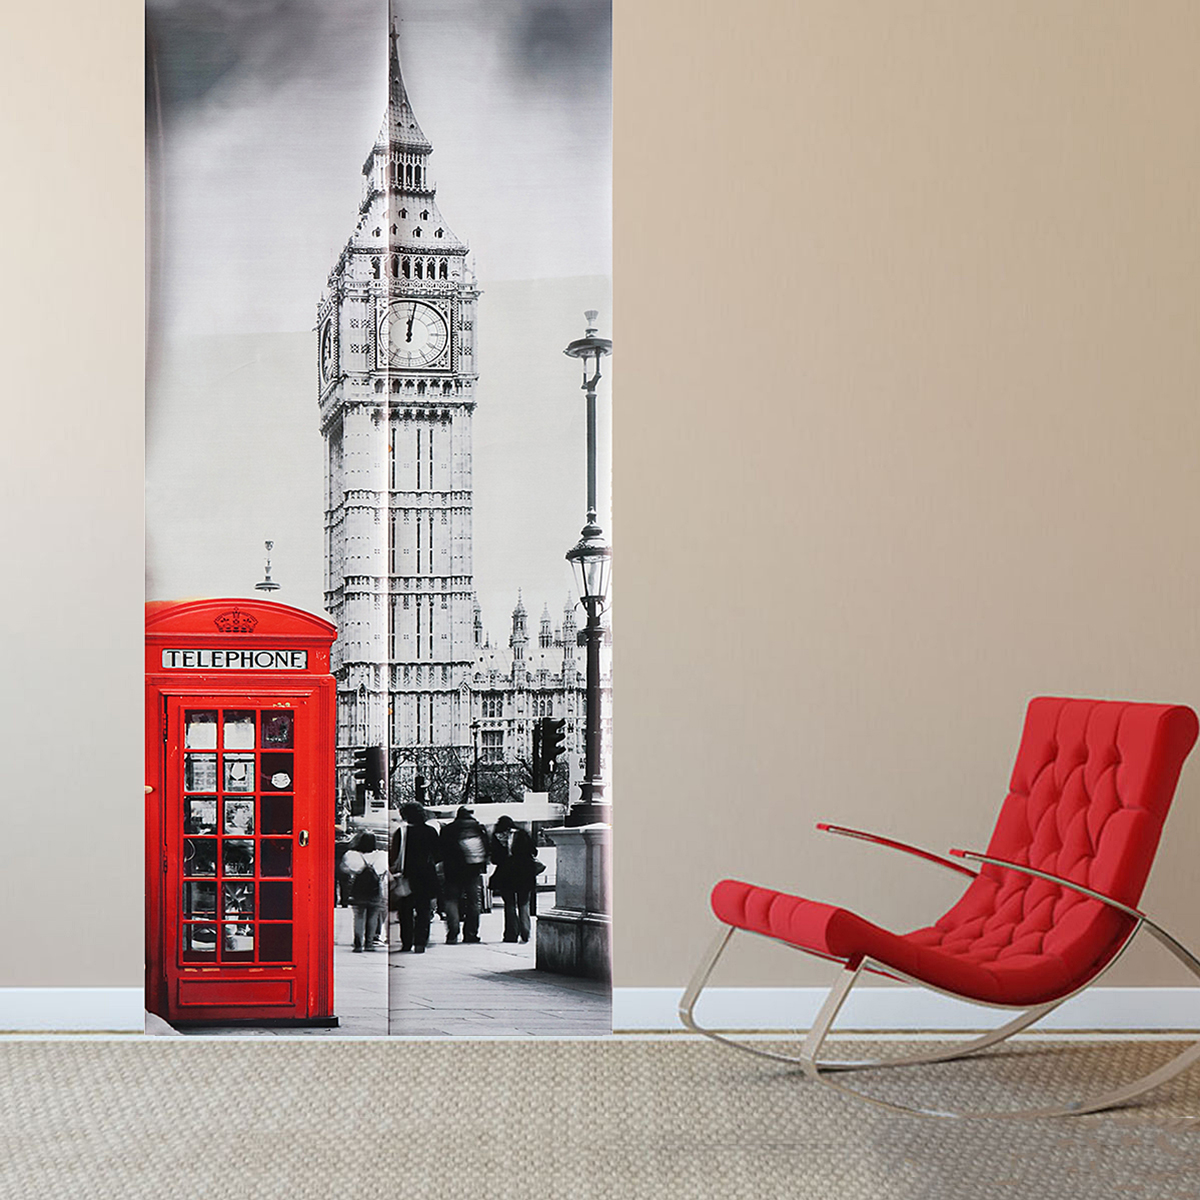 3D Art Door Wall Fridge Sticker Big Ben Decal Self Adhesive Mural Scenery Home Decor